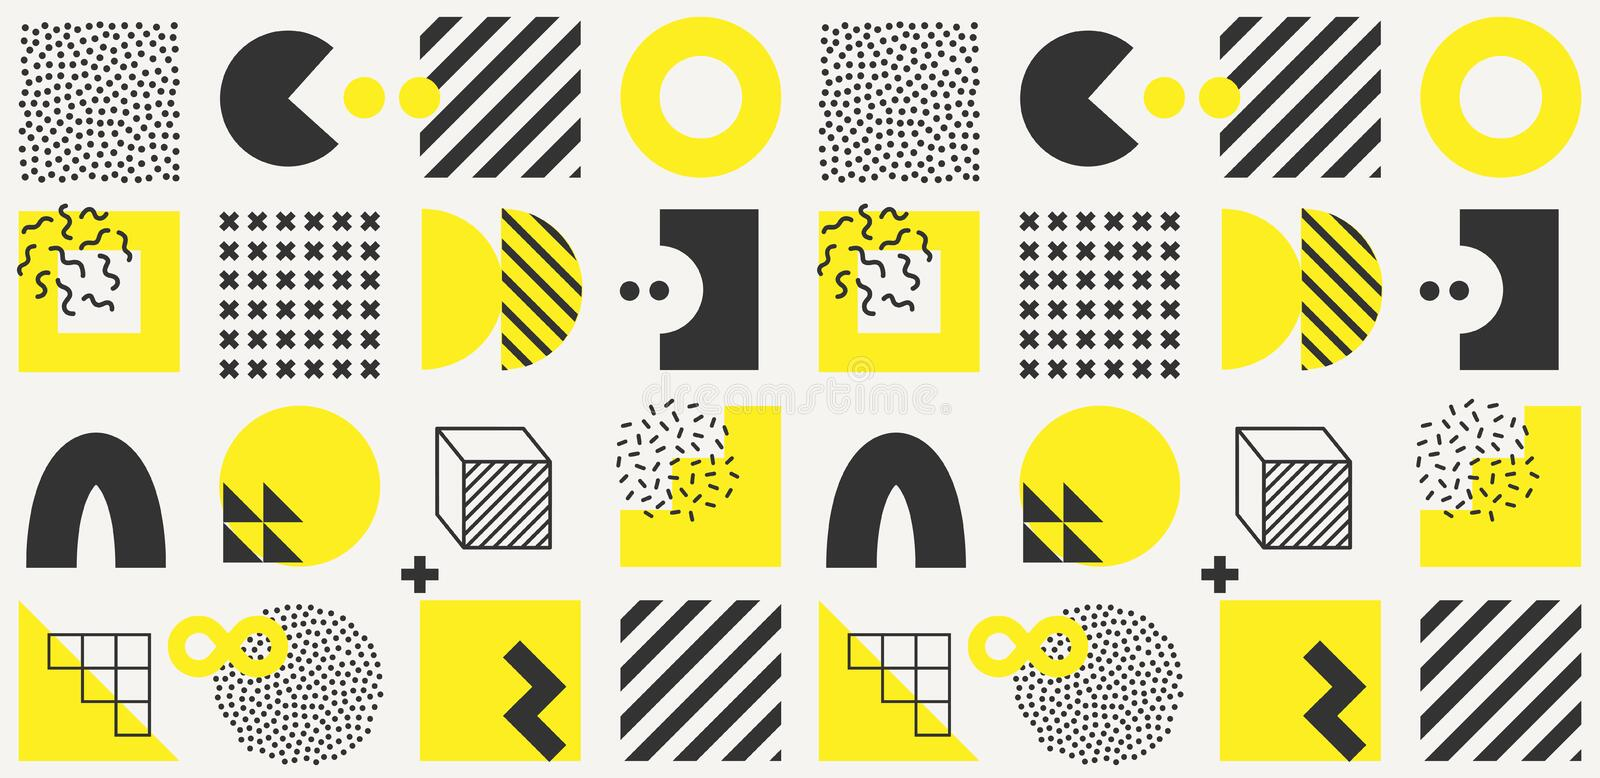 Vector minimalistic seamless pattern with bright bold geometric shapes. Hipster Memphis style royalty free illustration